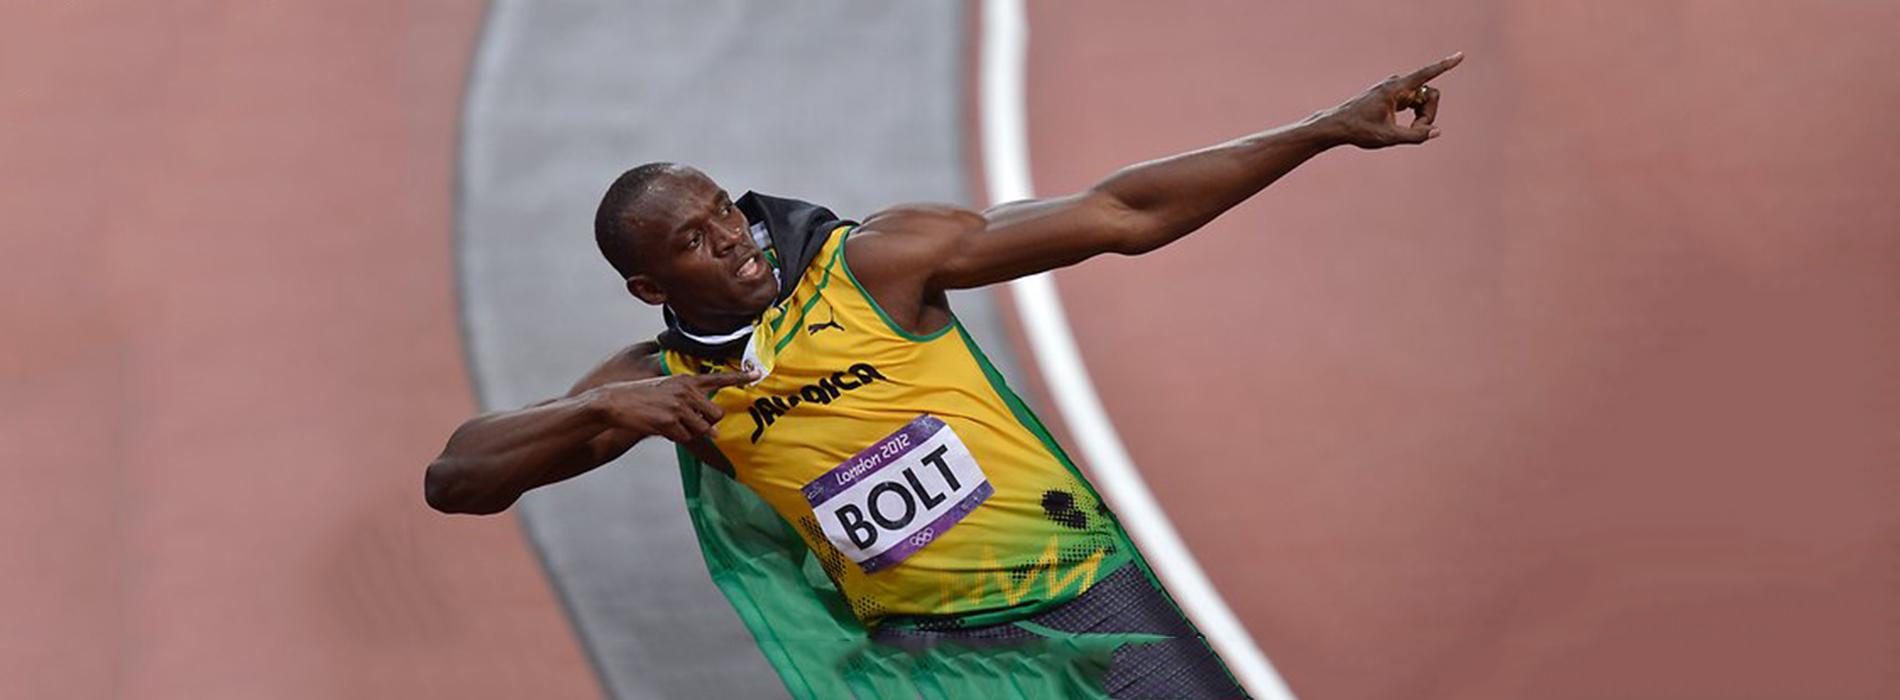 purchase cheap e7e39 2f163 5 Things Your Marketing Can Learn From Usain Bolt